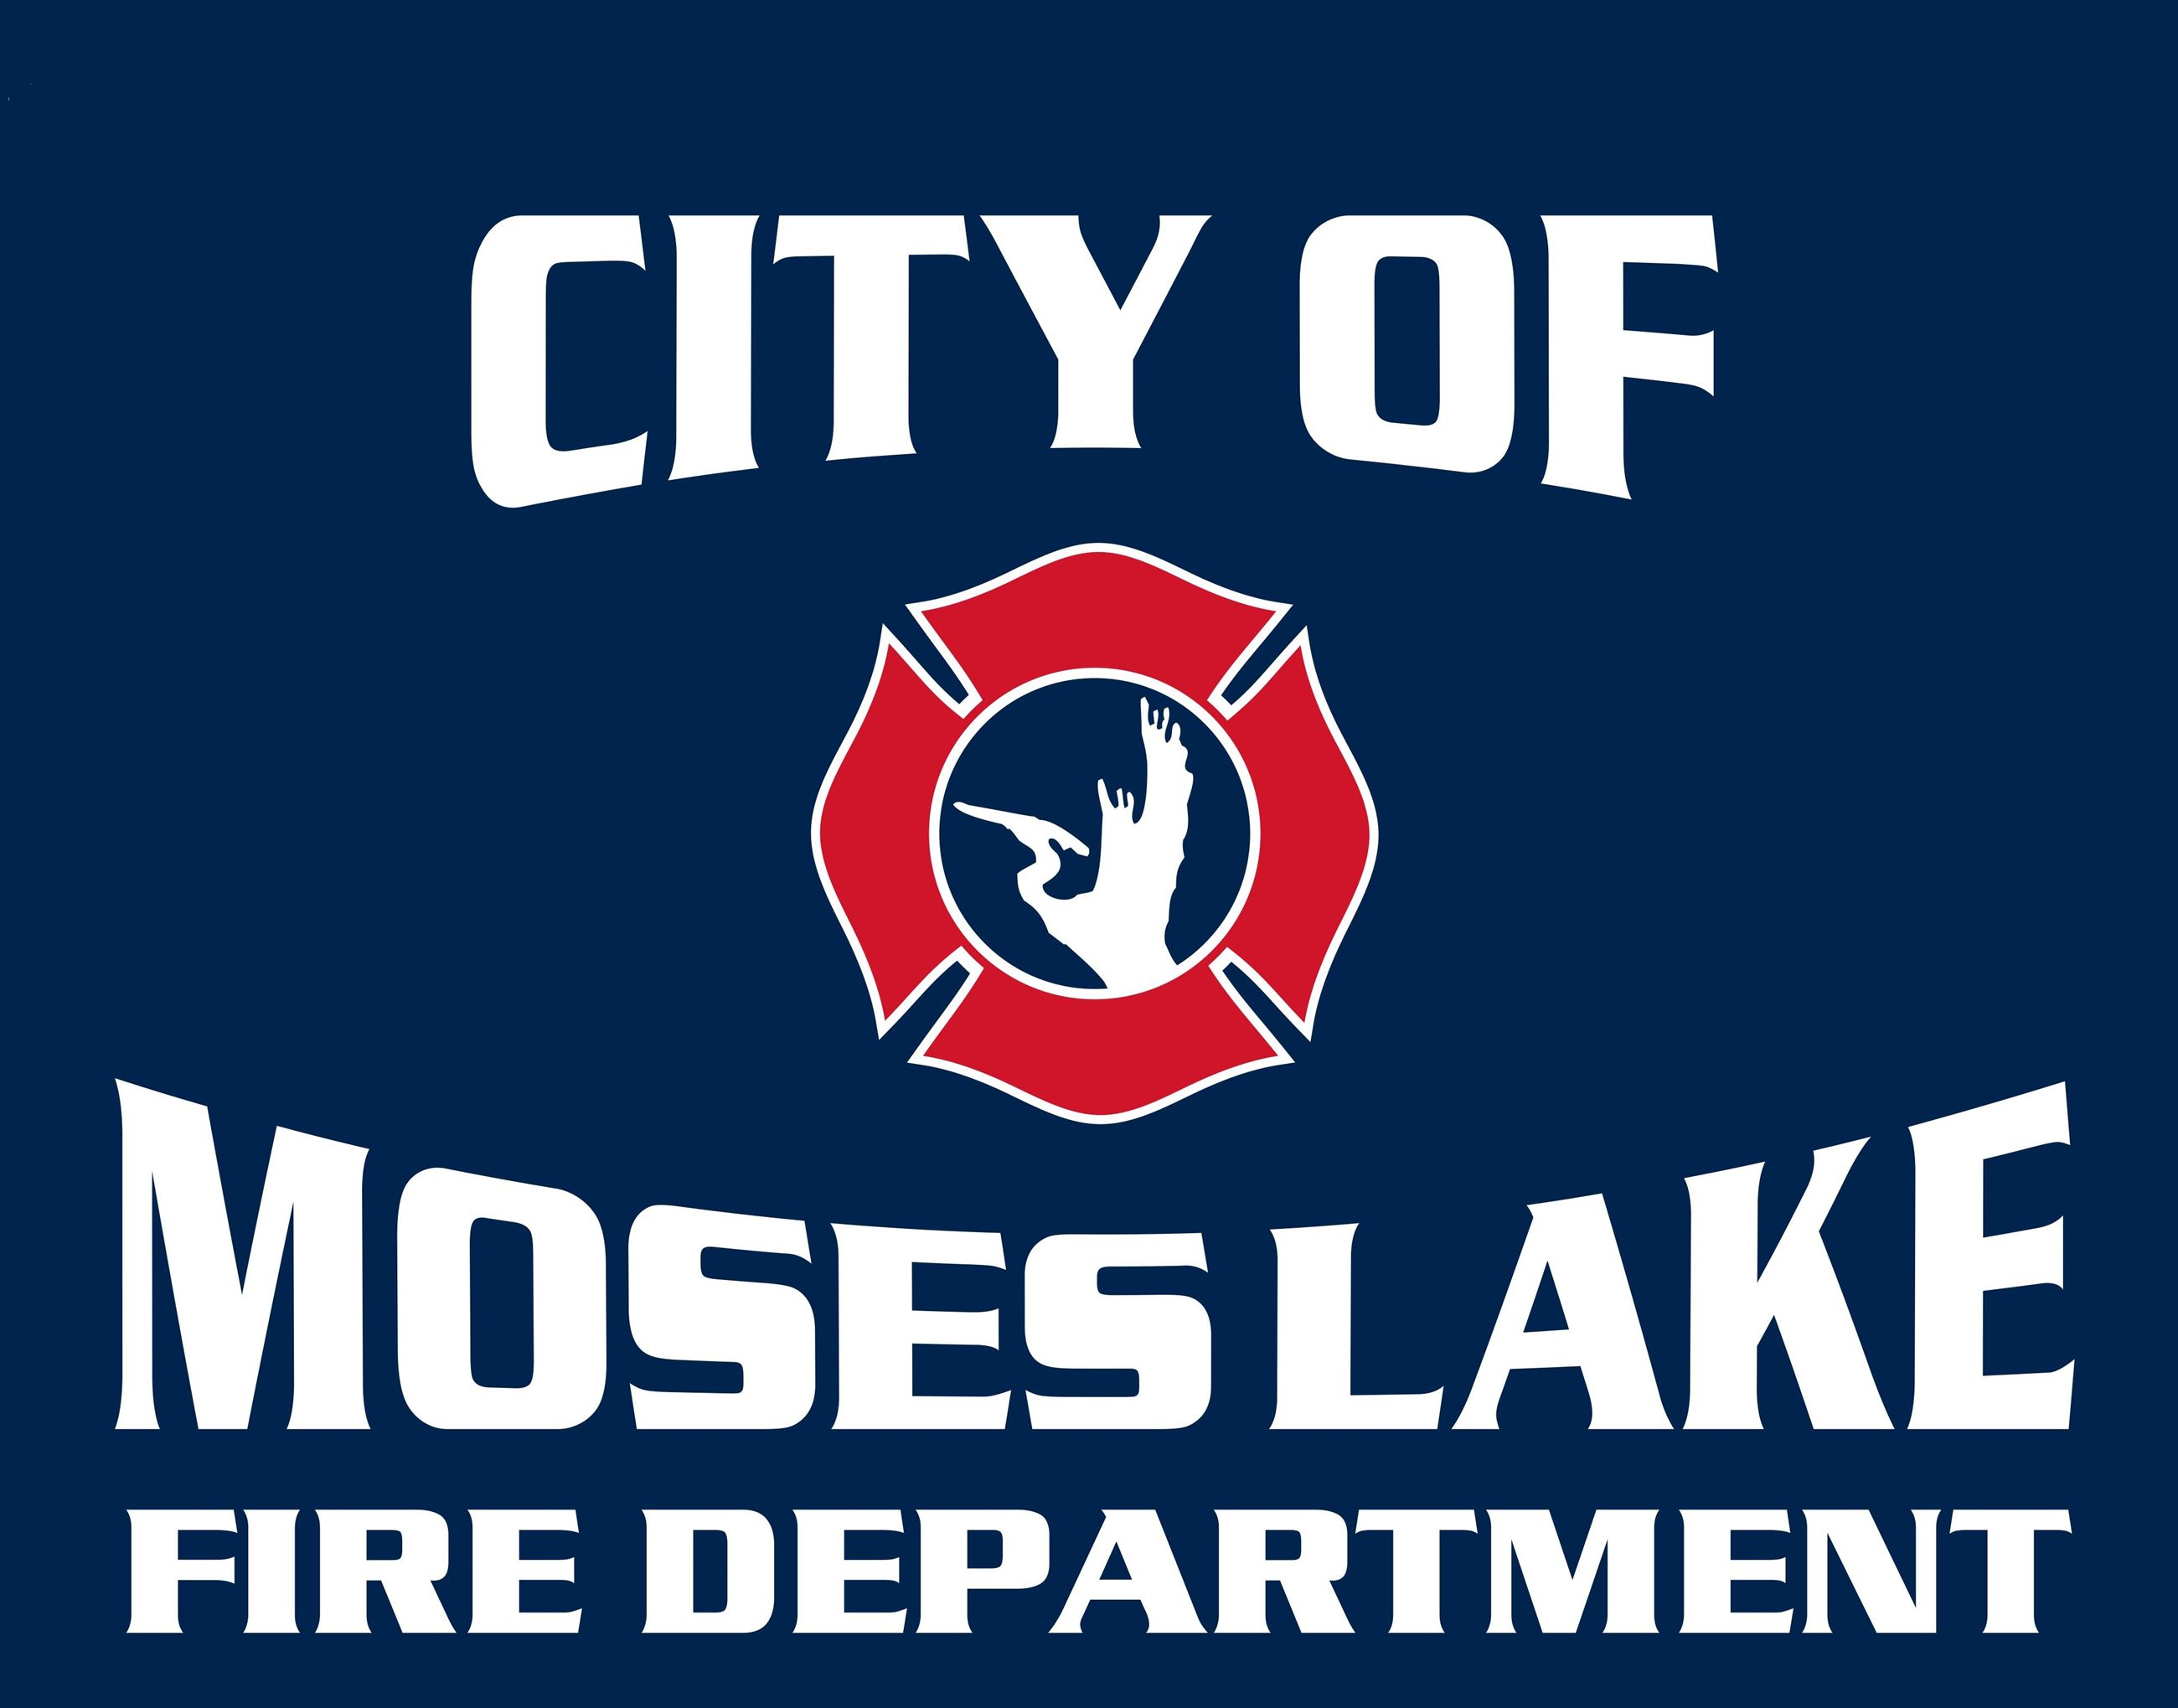 City of Moses Lake Fire Department